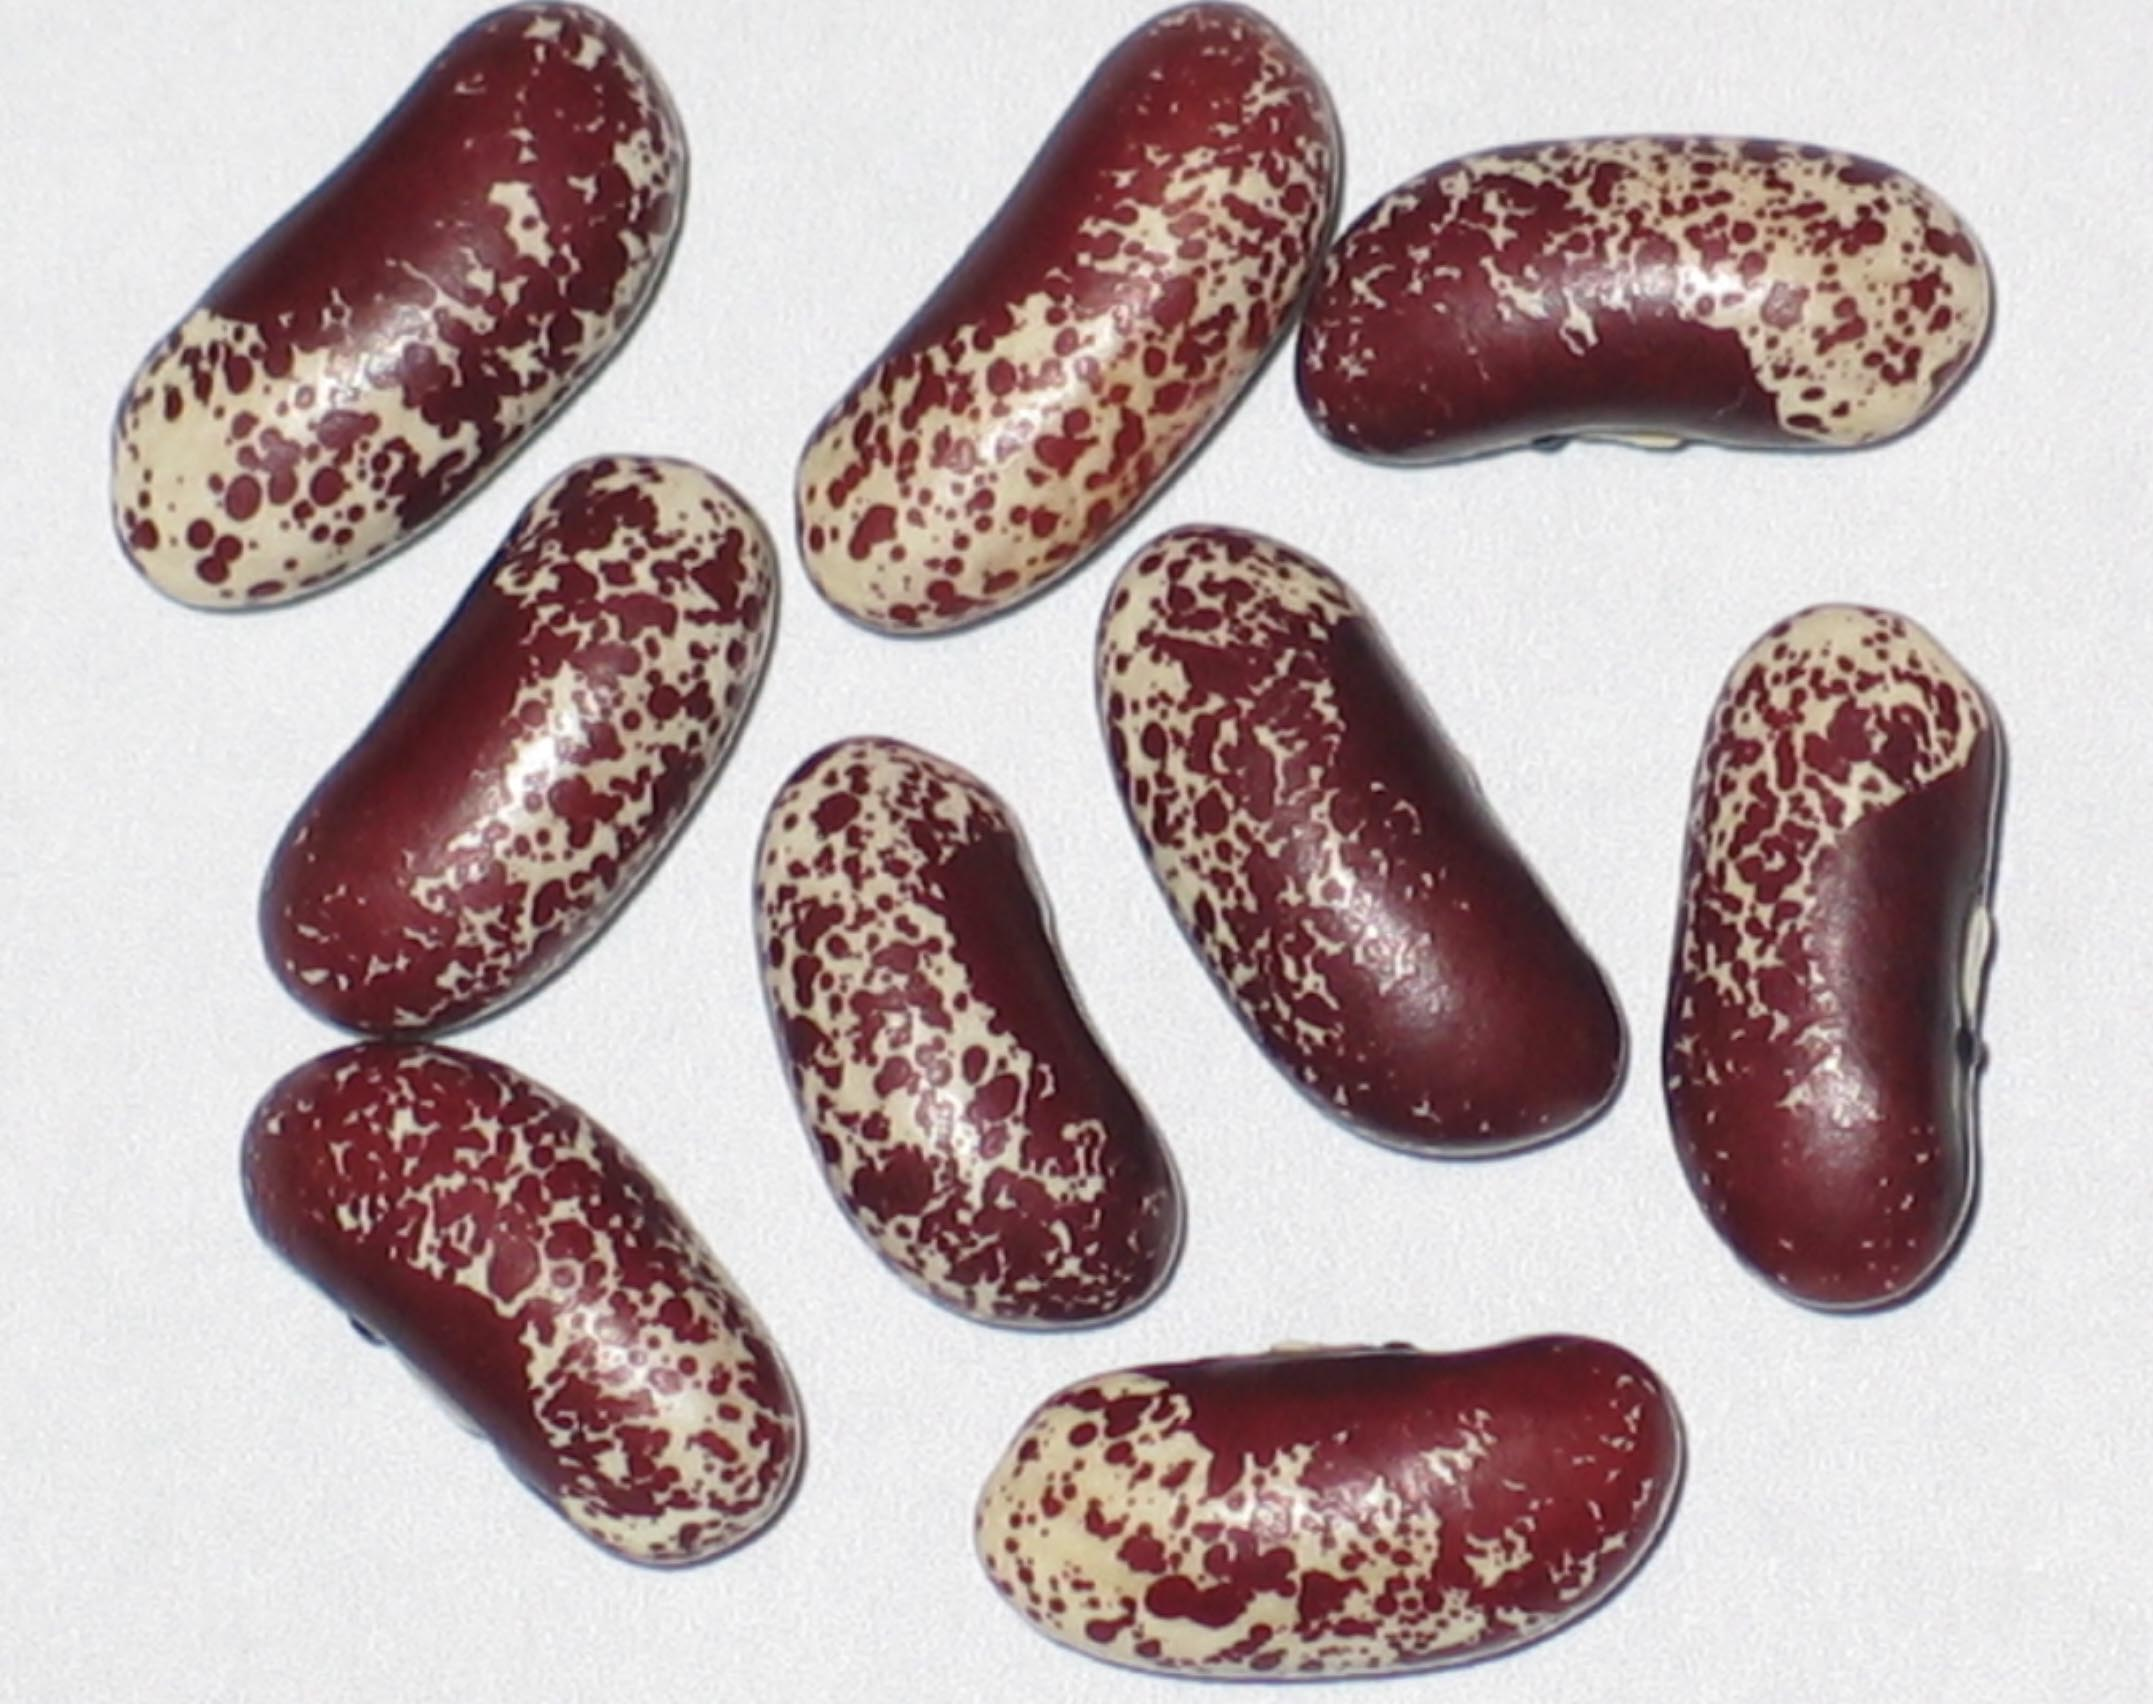 image of Smith River Super Speckle beans